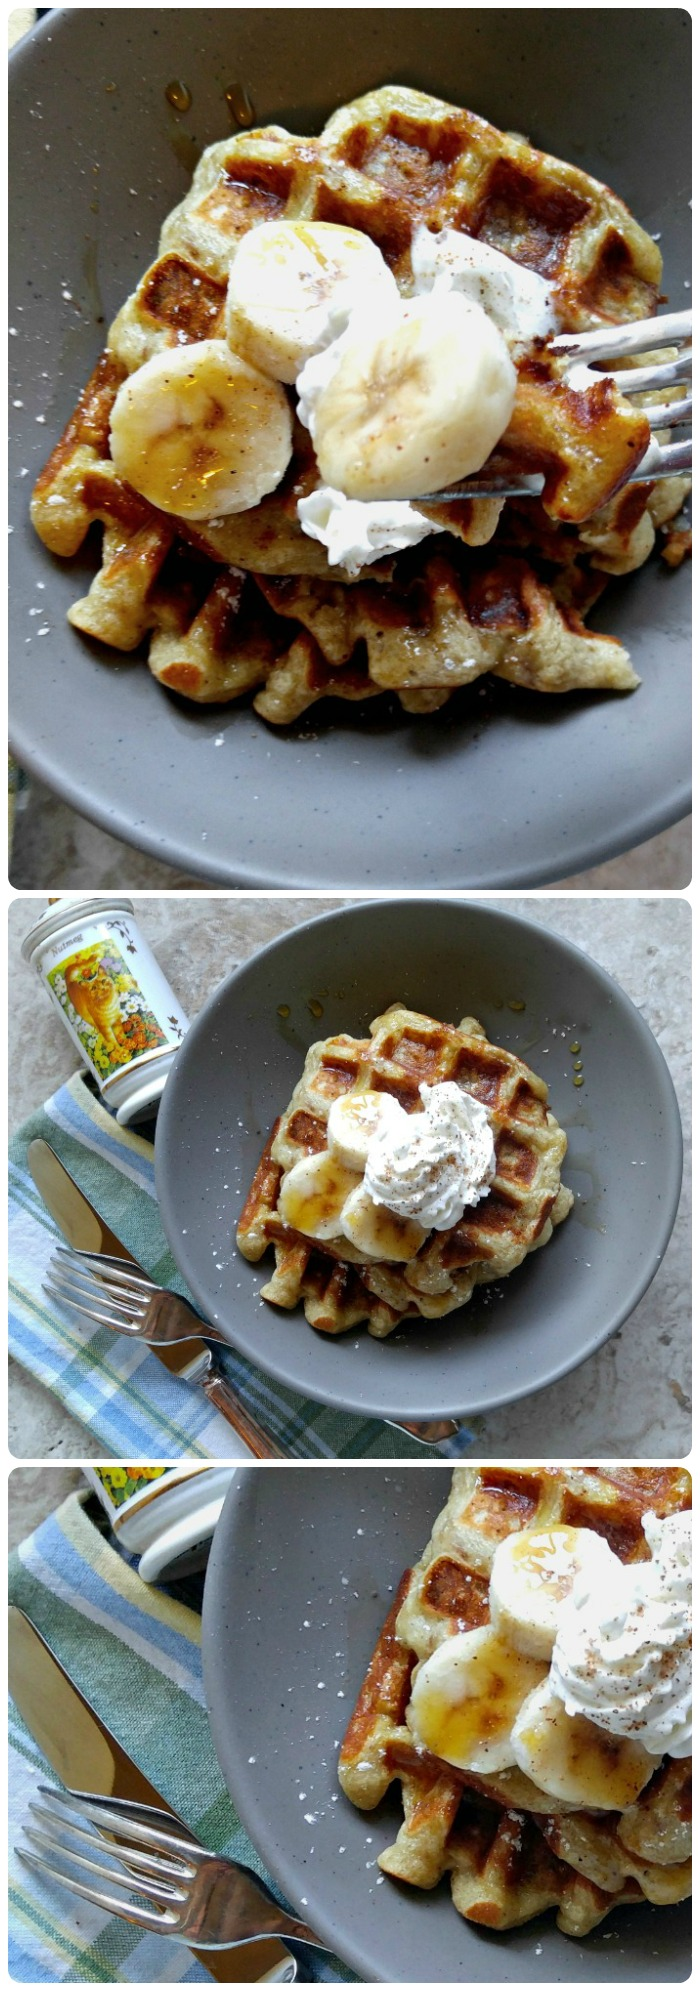 These banana pumpkin pie spice waffles are the perfect way to start your holiday morning. They are rich with just a hint of pumpkin. recipesjust4u.com